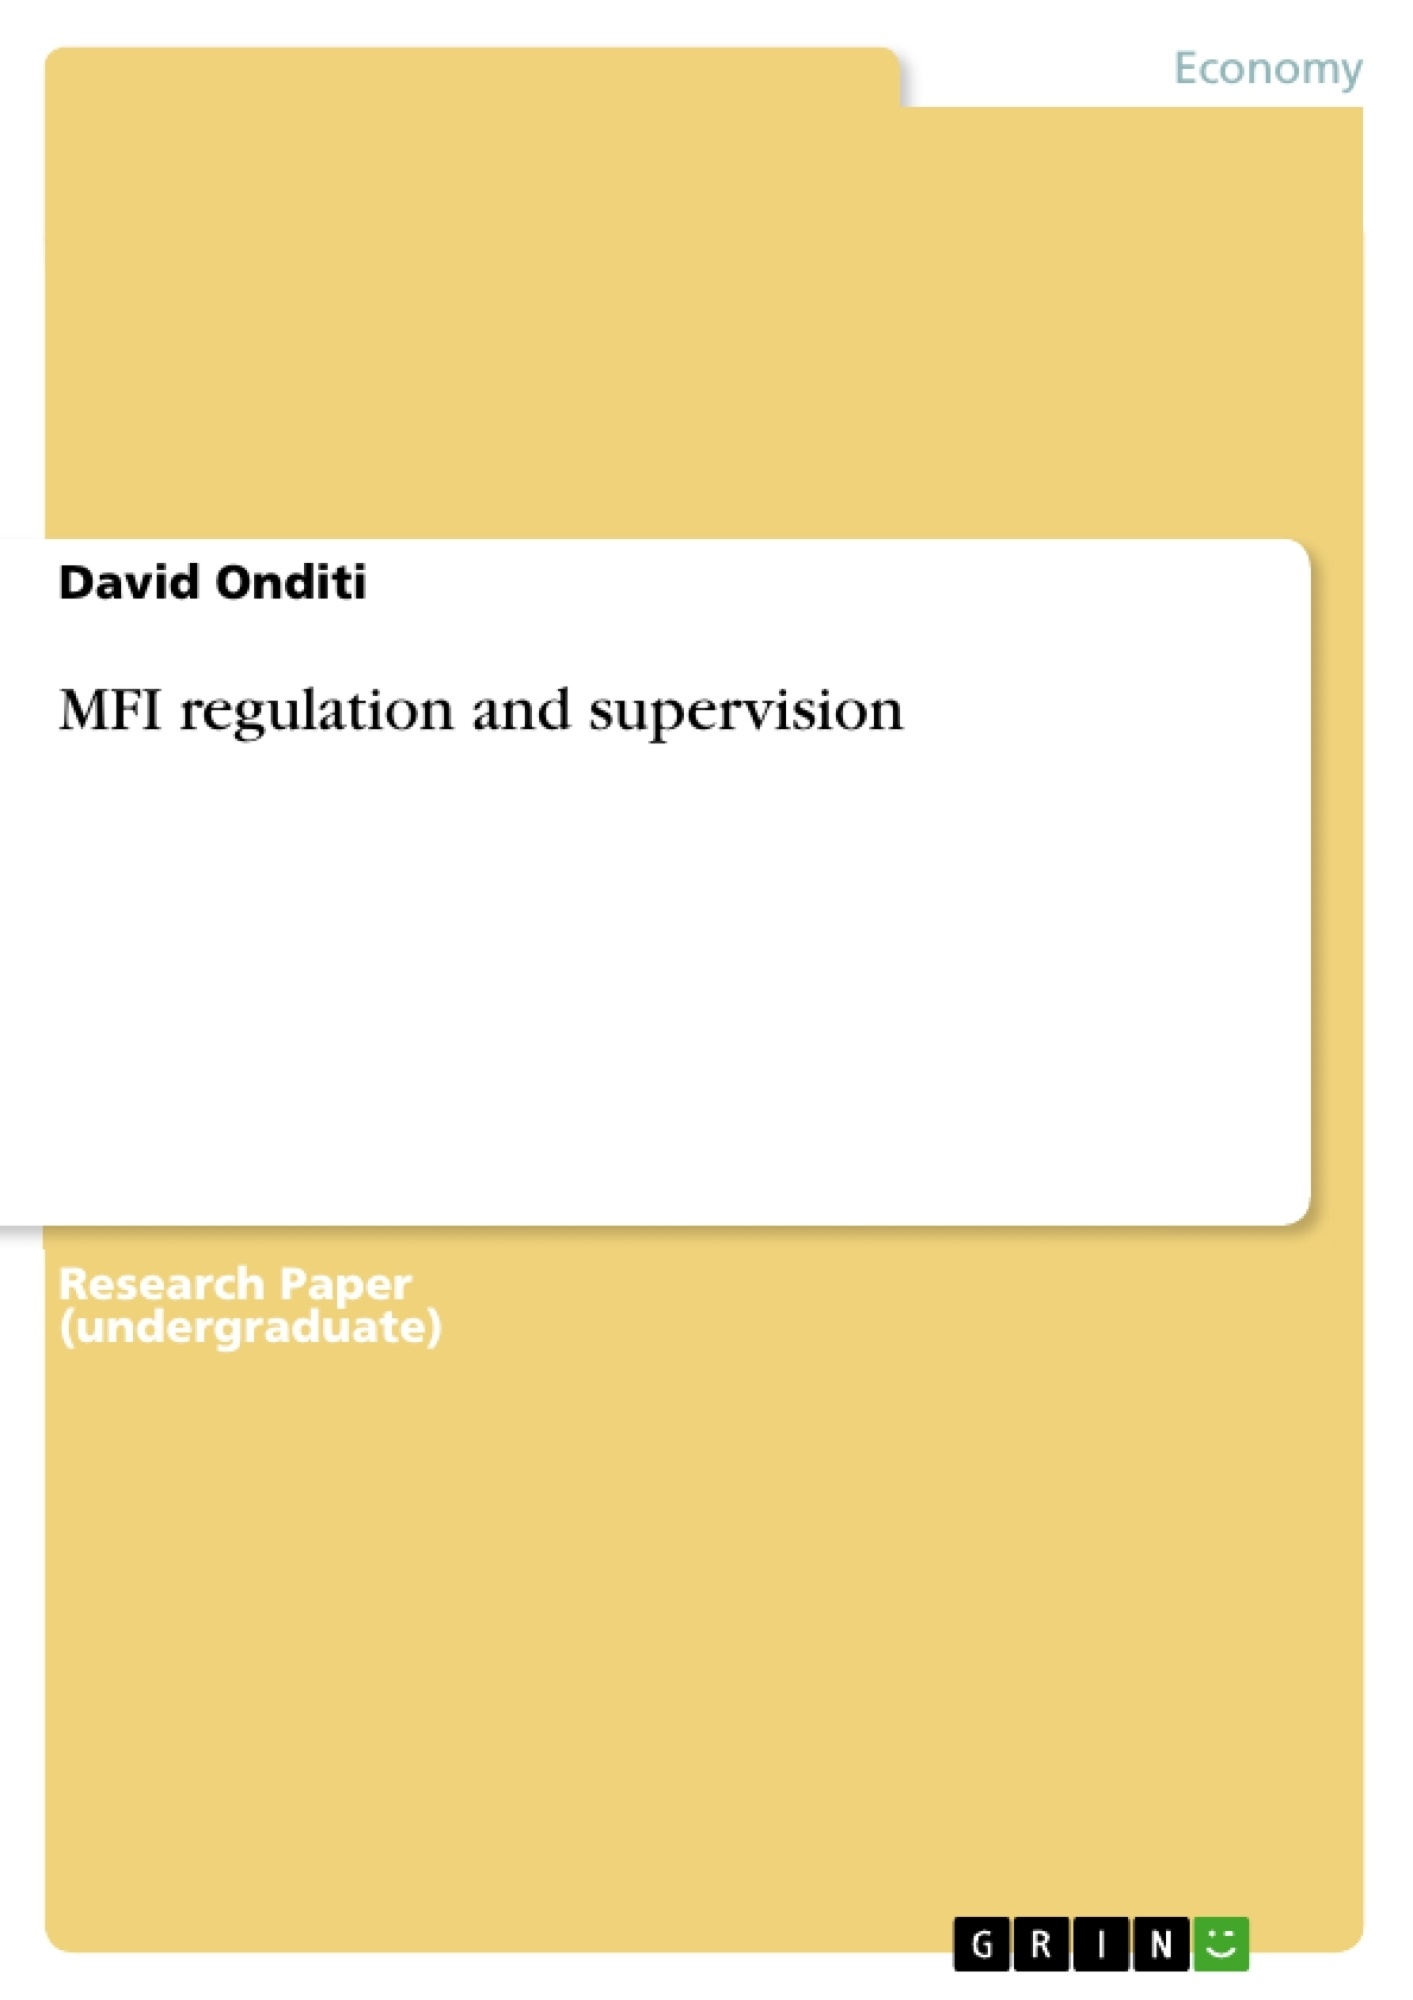 Title: MFI regulation and supervision